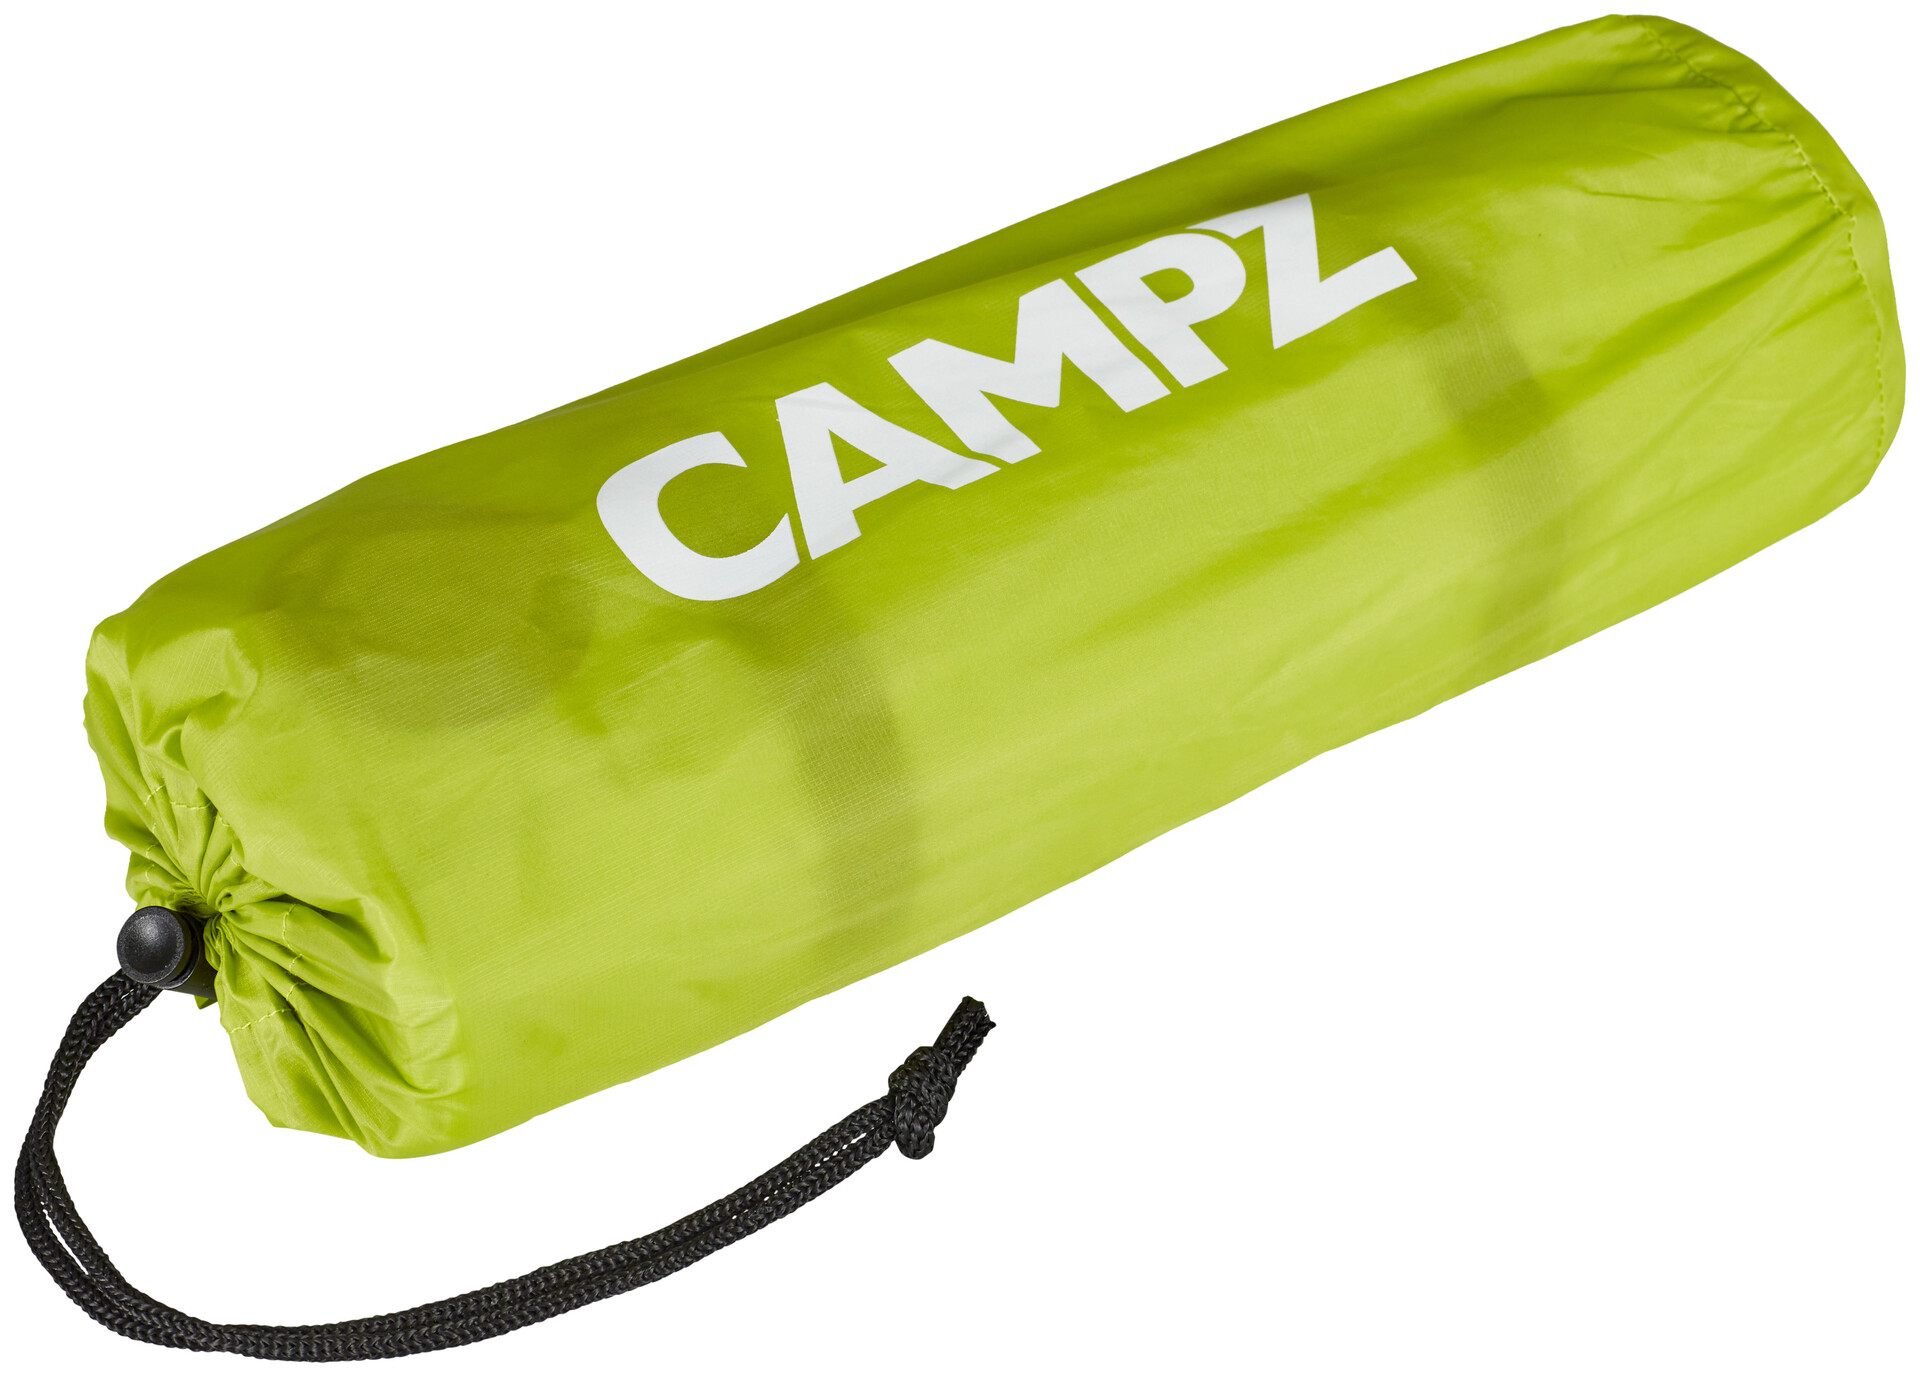 CAMPZ Trekking sleeping pad (2019) (2019) (2019) 2cdaed